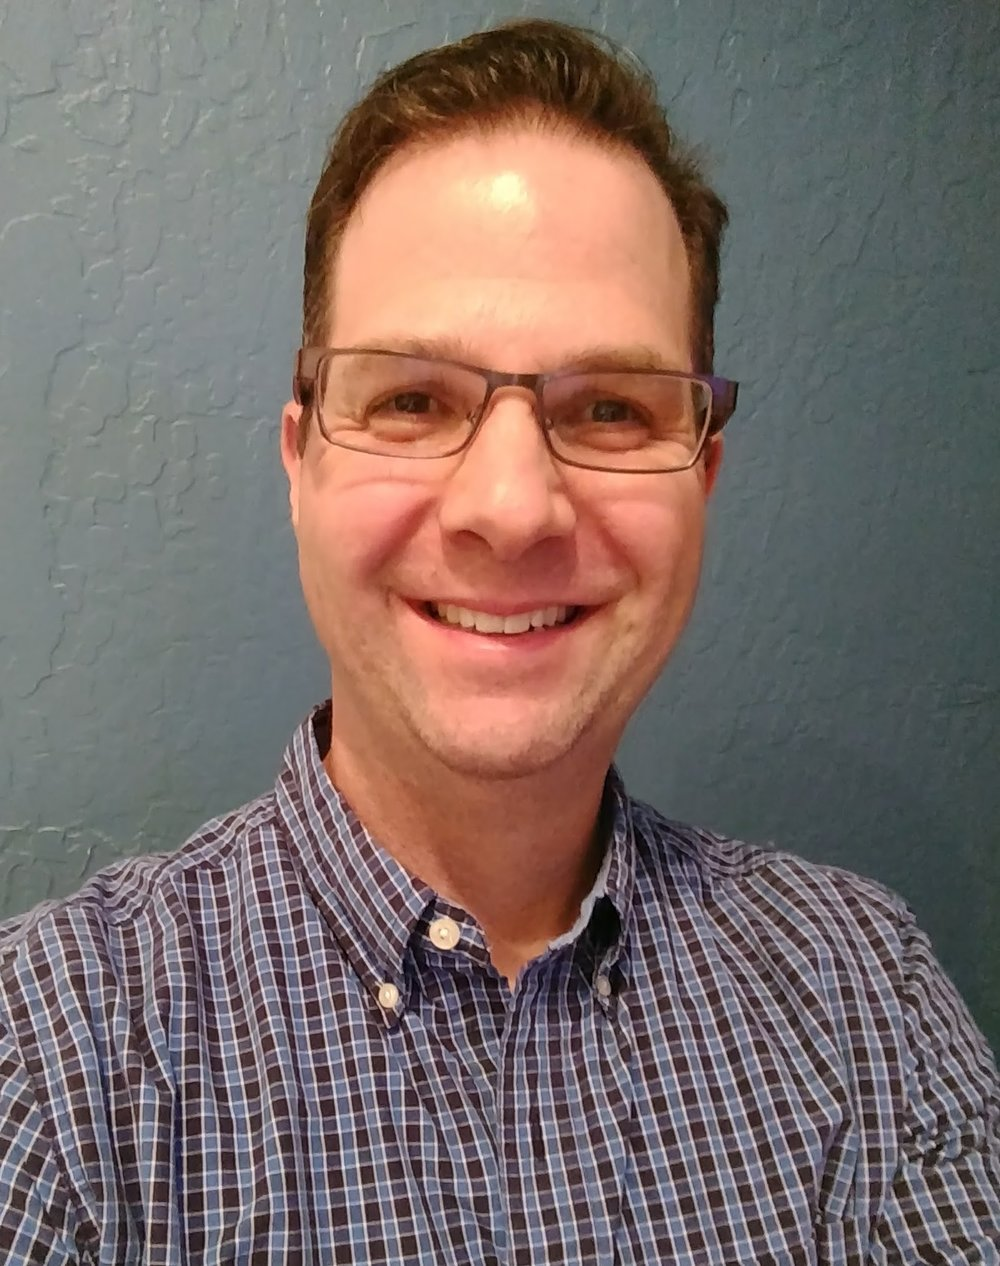 Community XR Partner - Matt Schuster, Executive Director, Public Media Network, Kalamazoo, MI